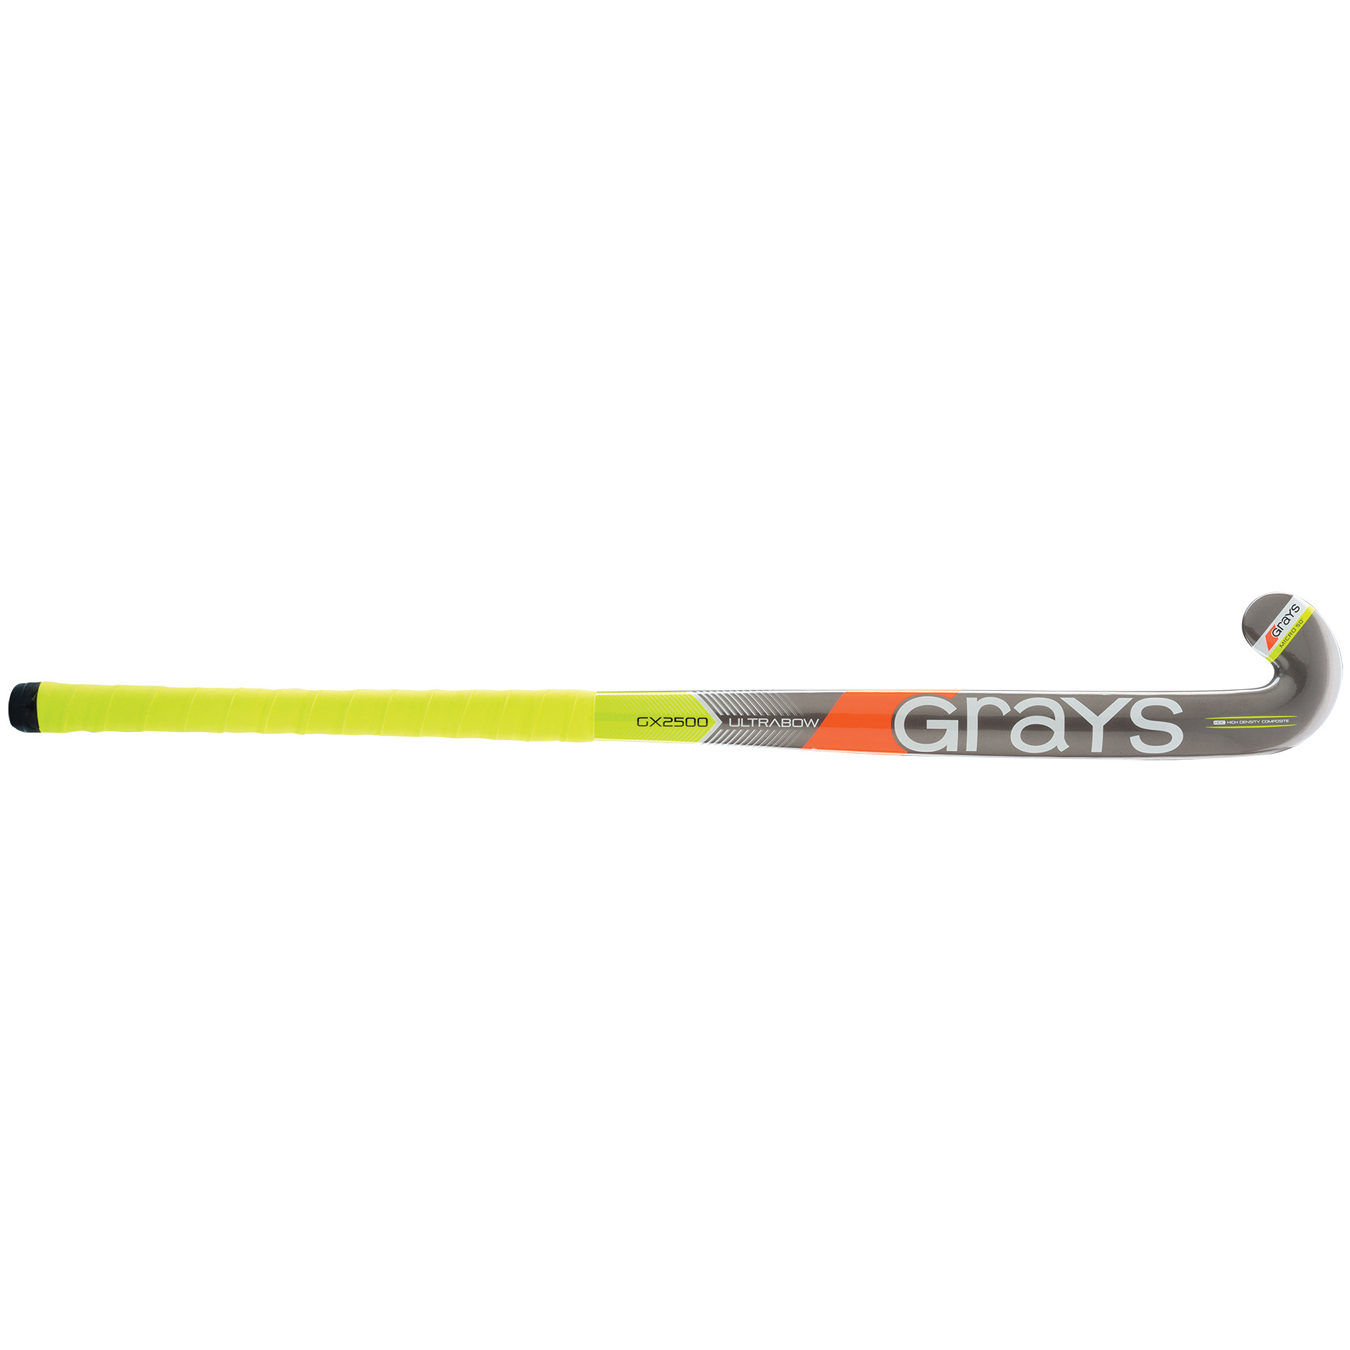 Junior kunstof hockeystick Grays GX2500 Ultrabow